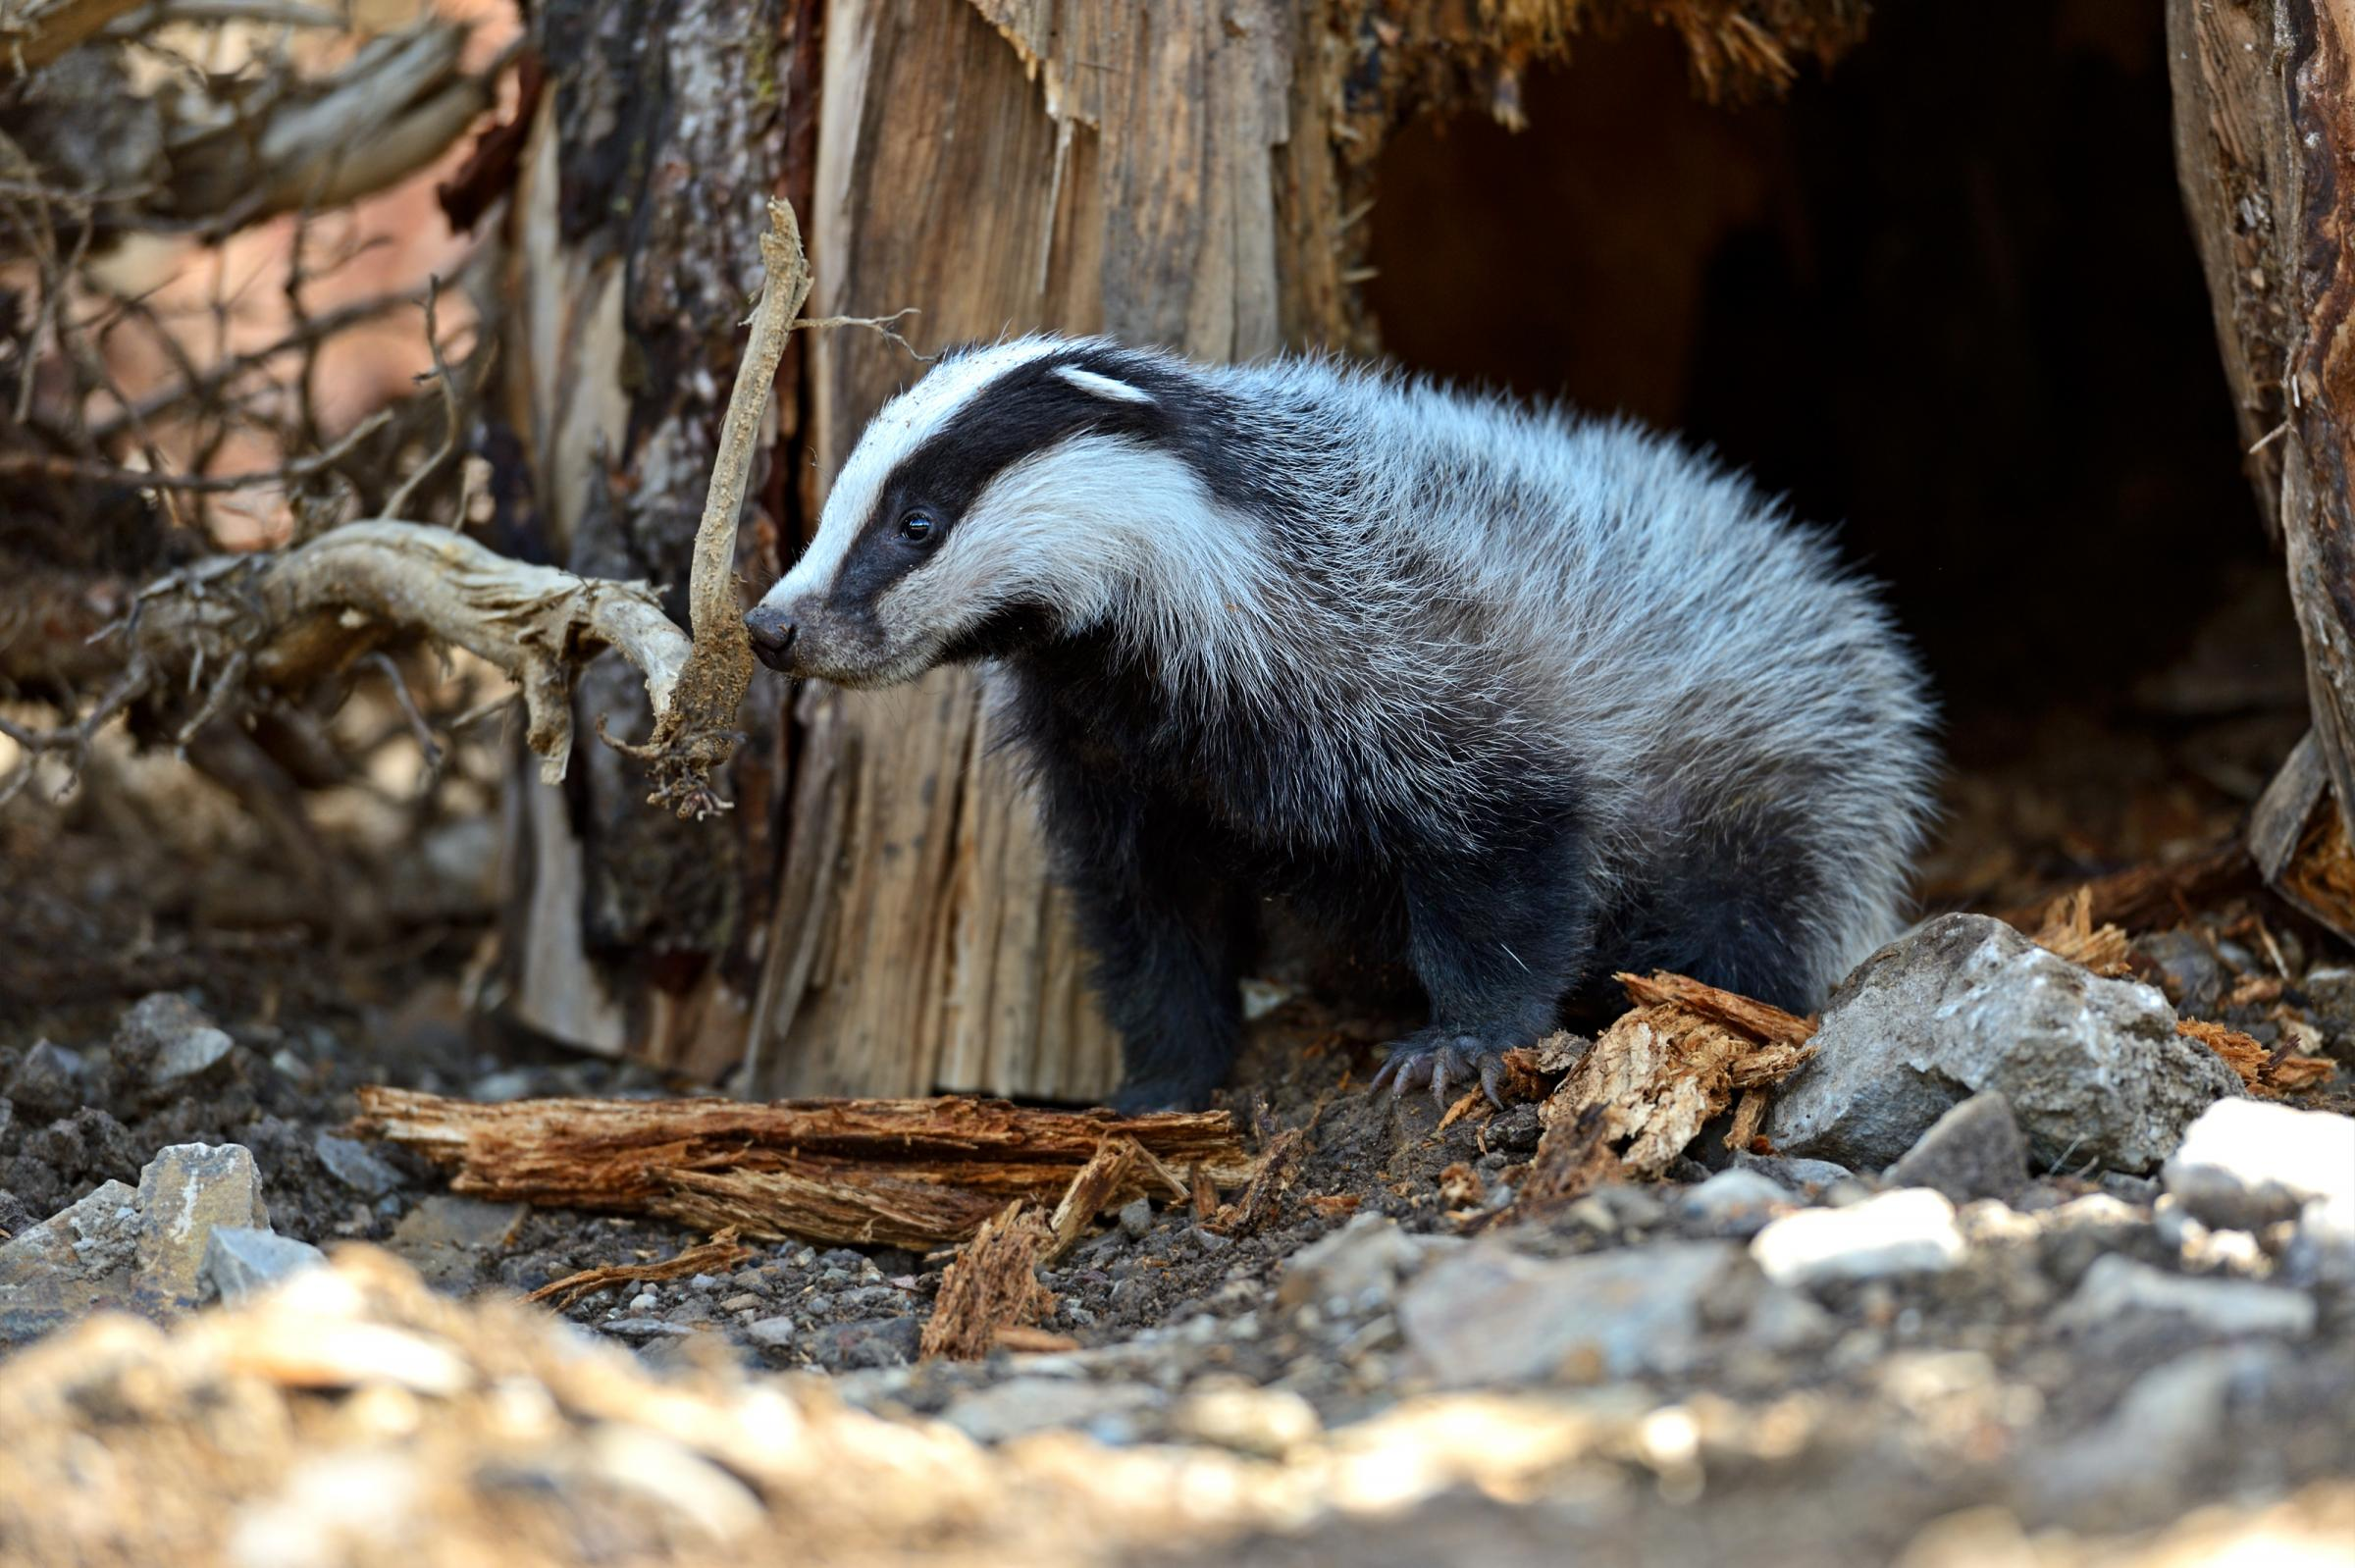 BVA questions introduction of badger culling into bTB Low Risk Area